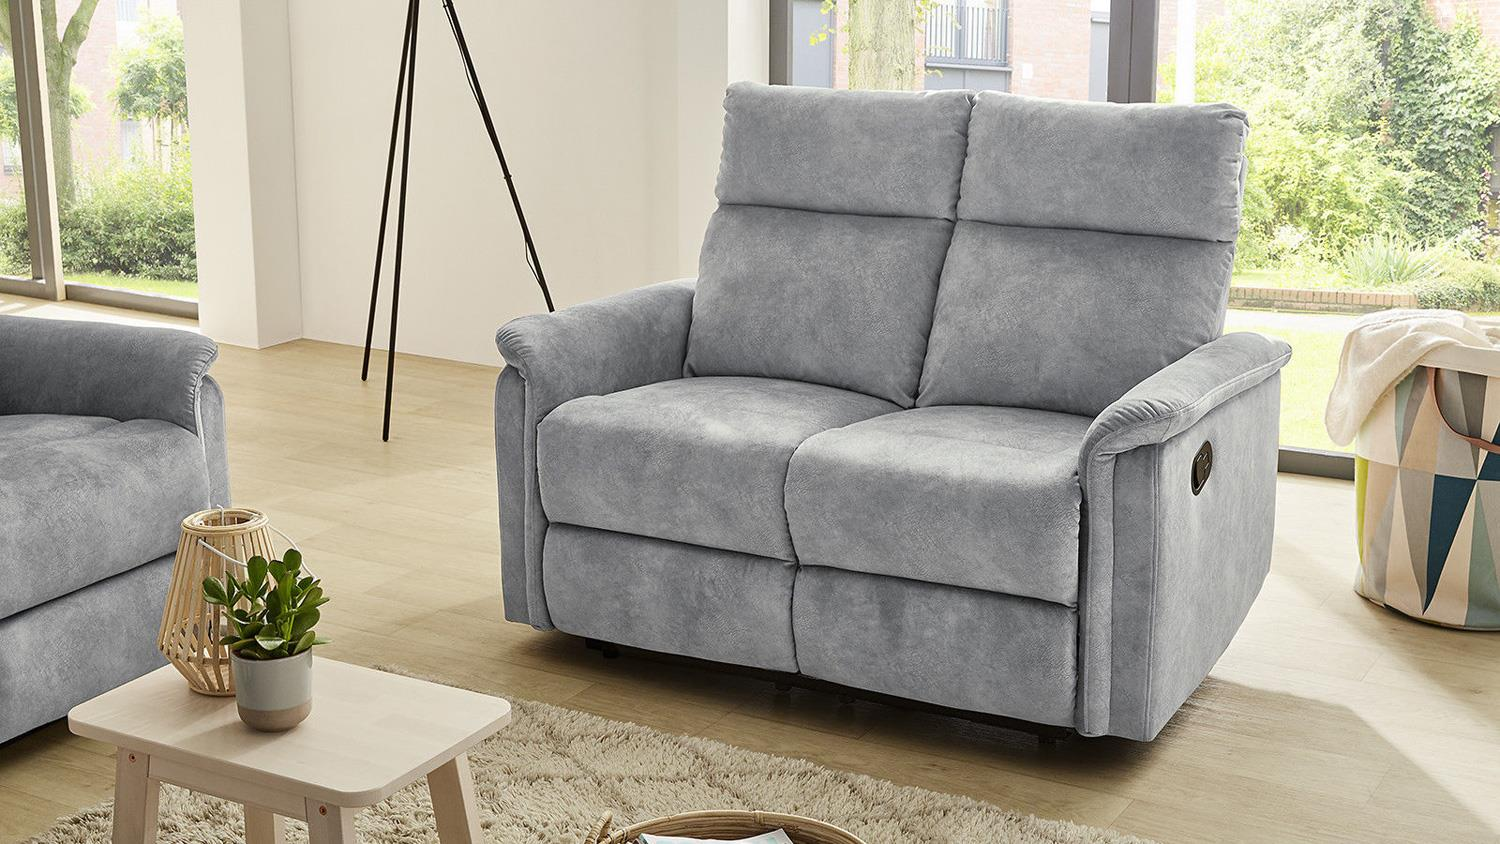 Sessel 2 Sitzer Sofa Amrum Sessel Relaxsessel 2 Sitzer Mit Funktion